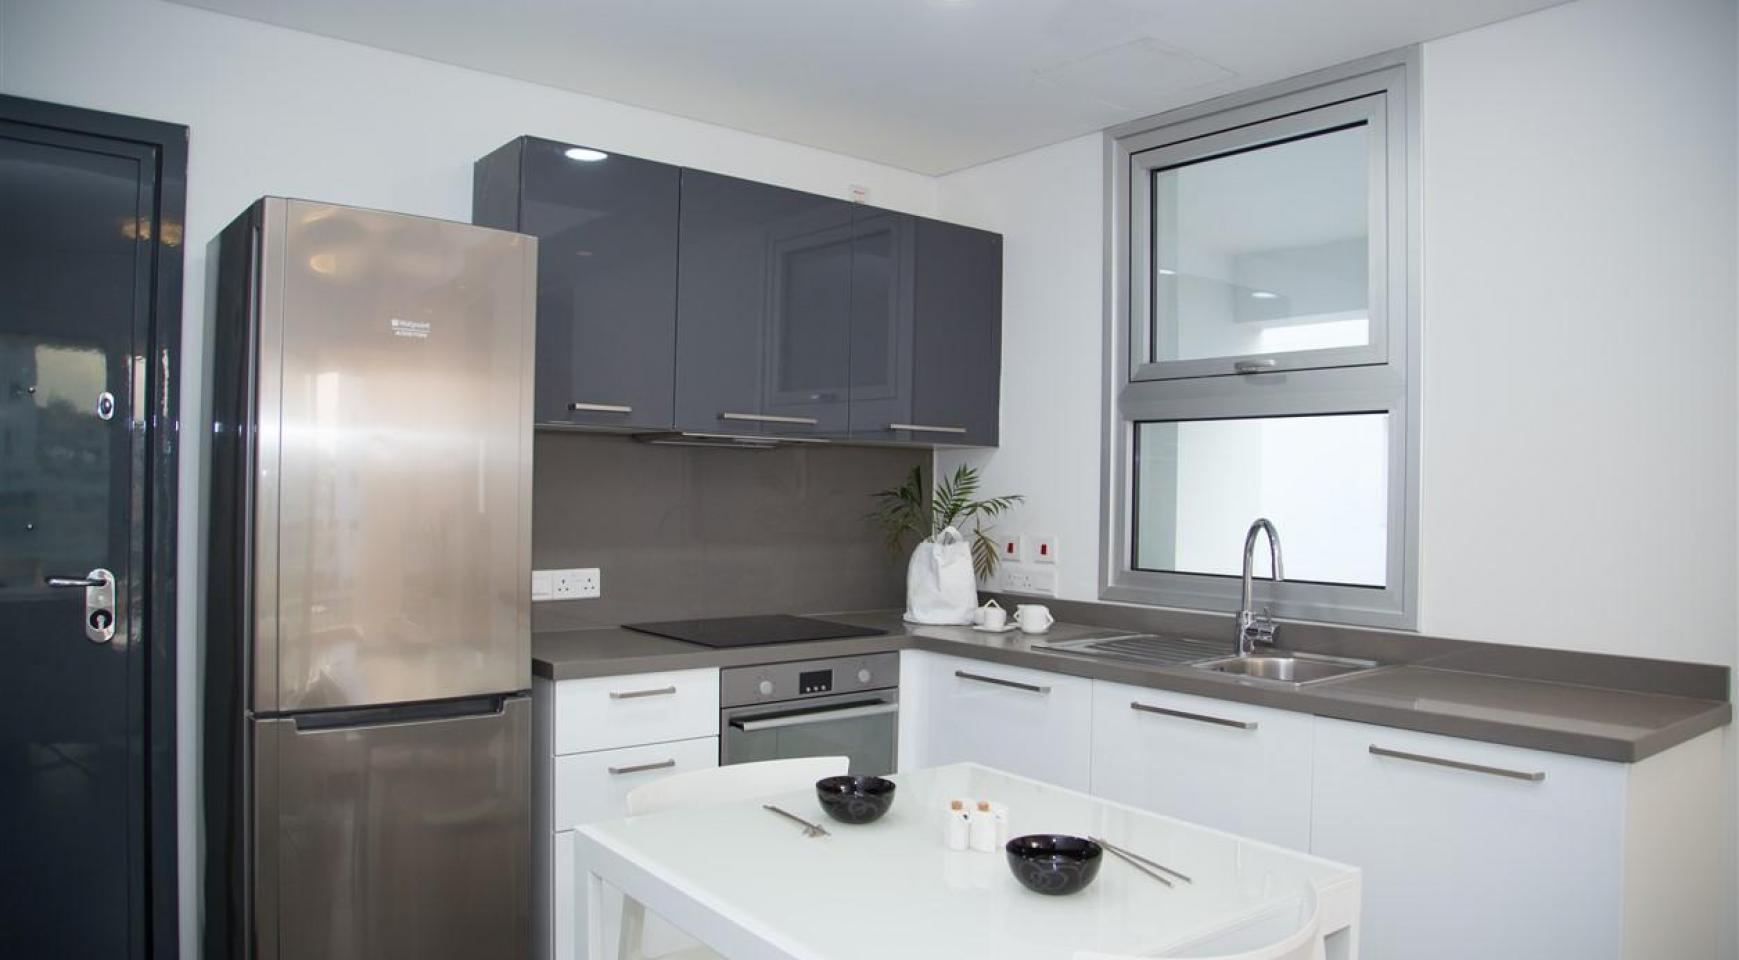 Luxury 2 Bedroom Apartment in a New Complex - 25